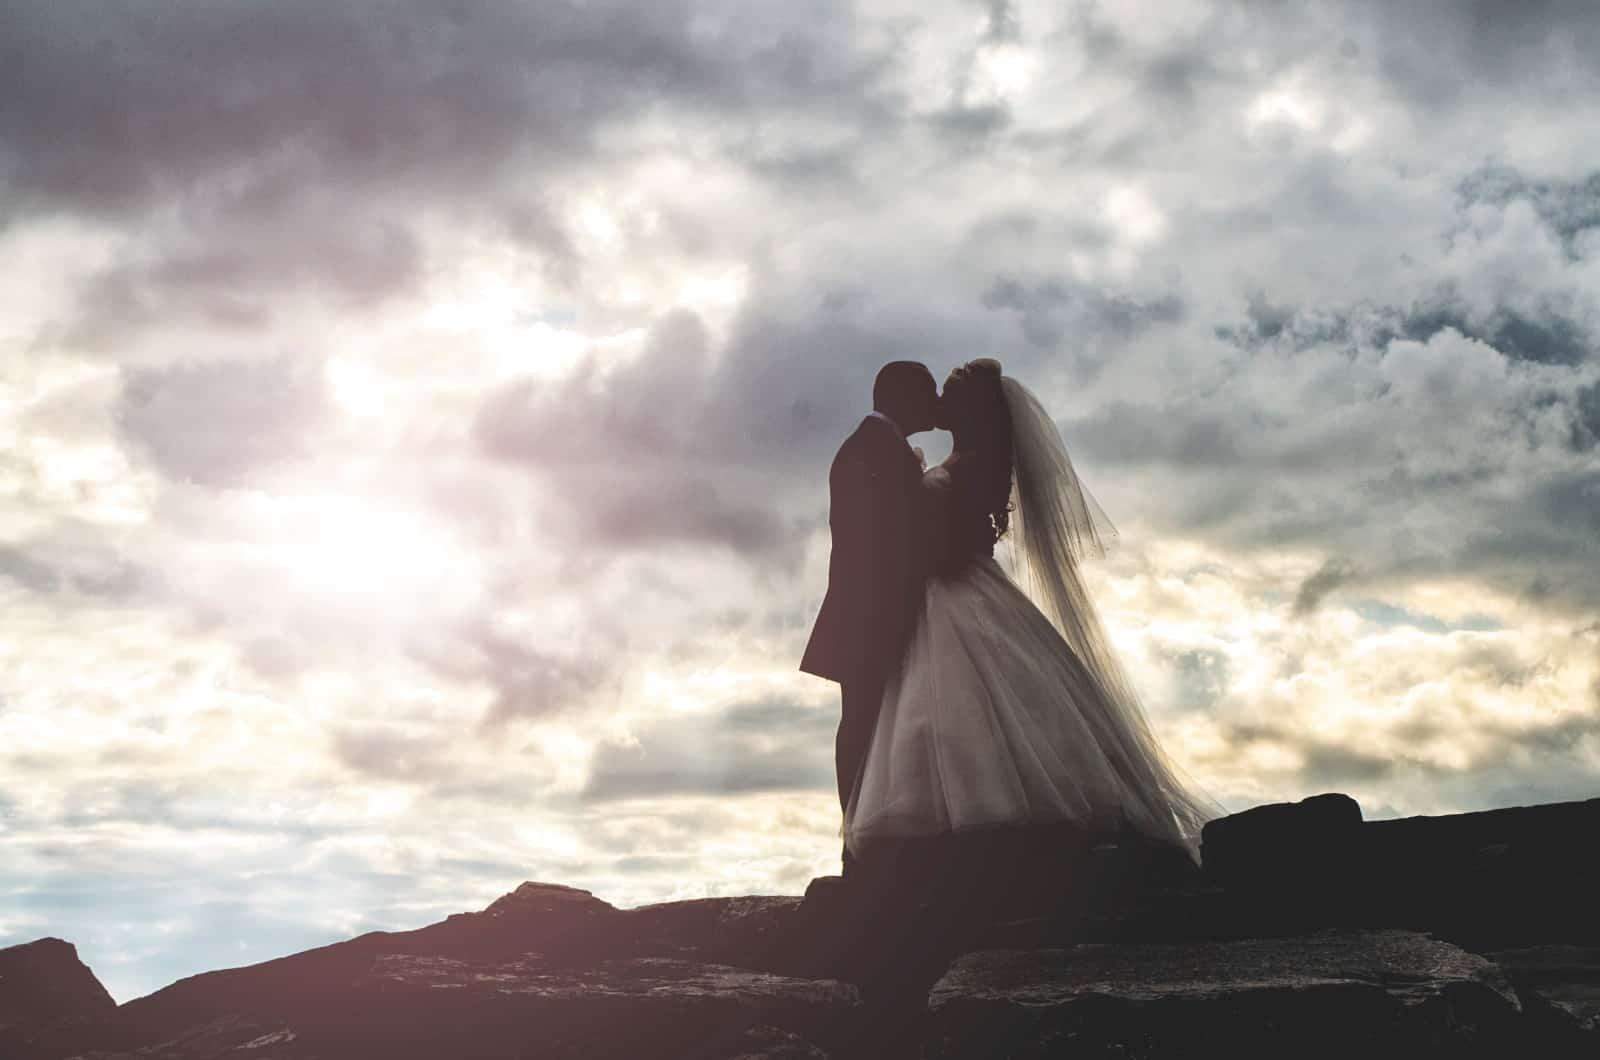 Bride & groom stood on top of cliff silhouetted against the cloudy sky